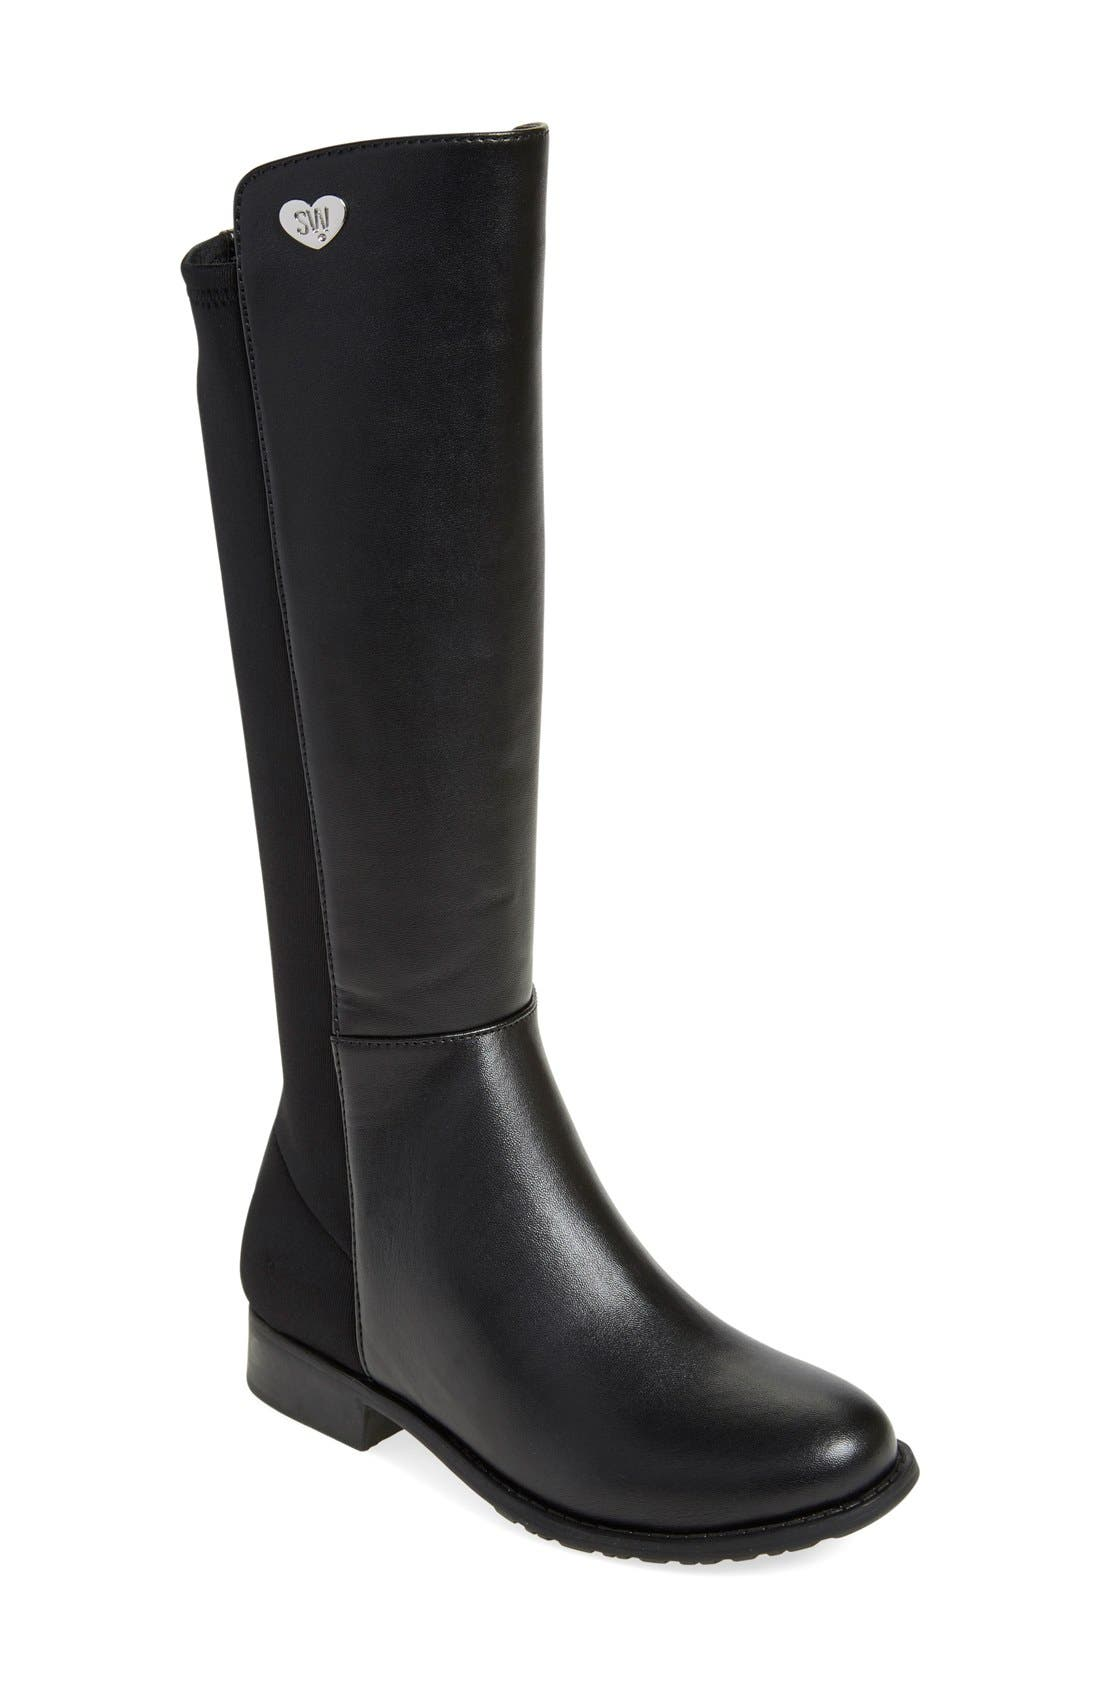 Stuart Weitzman '50/50' Stretch Back Riding Boot (Walker, Toddler, Little Kid & Big Kid)